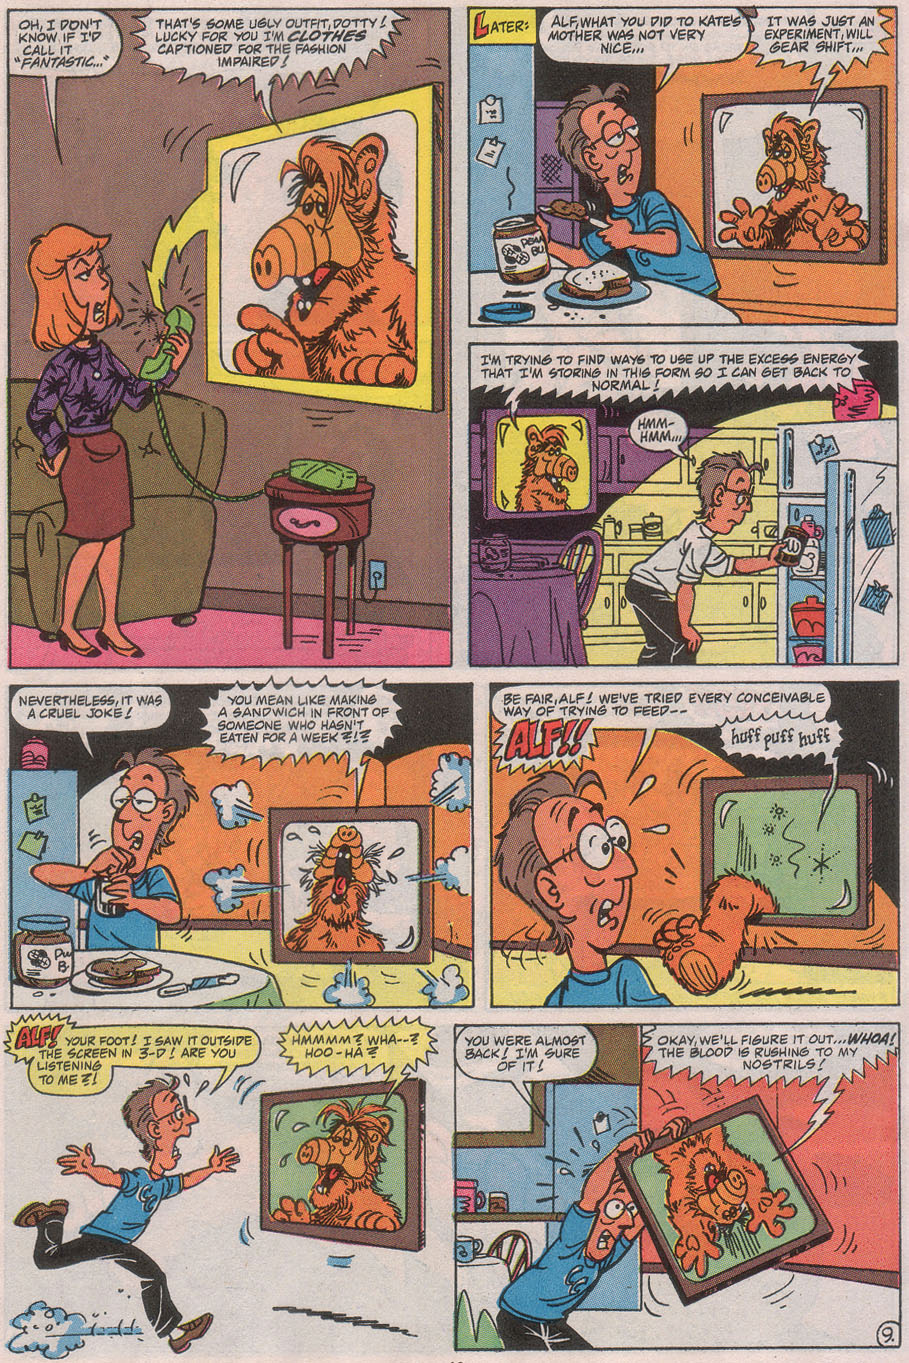 Read online ALF comic -  Issue #41 - 15